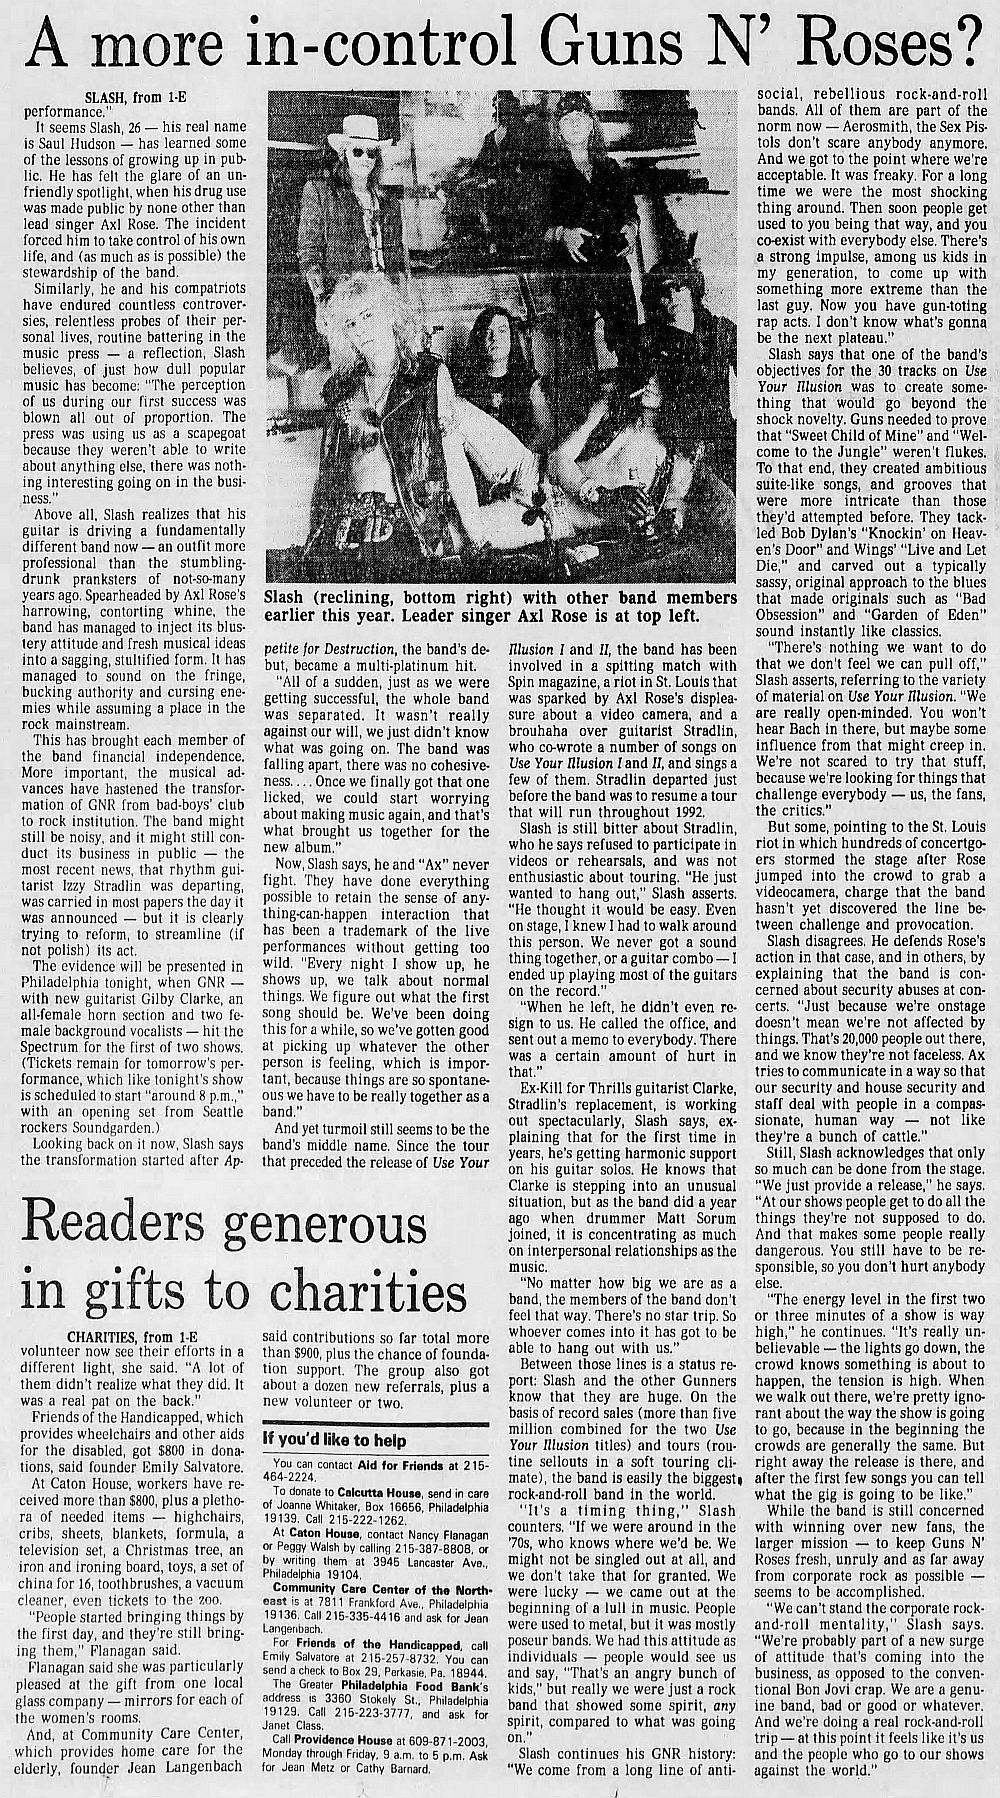 1991.12.16 - The Philadelphia Inquirer - A more in-control Guns N' Roses? (Slash) MkhPpEqb_o